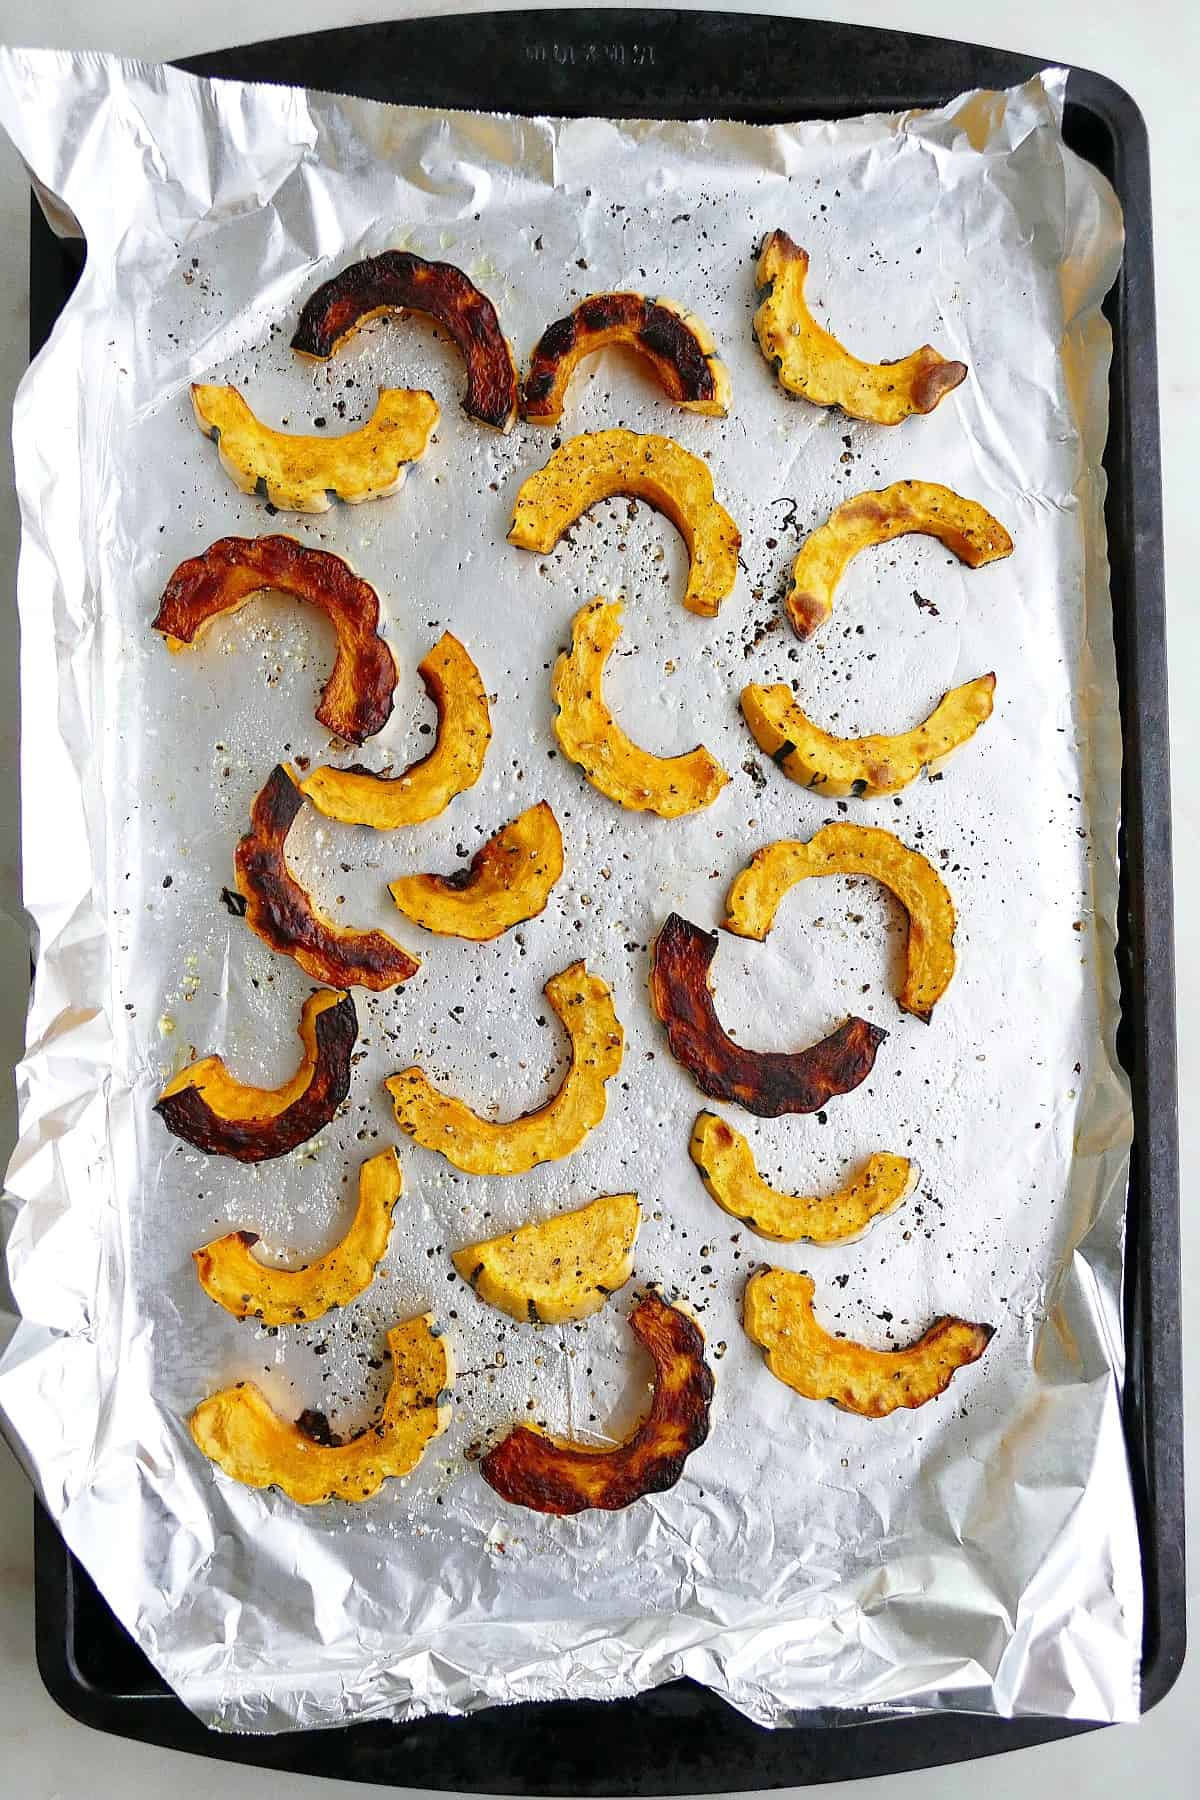 baked delicata squash fries on a baking sheet lined with aluminum foil